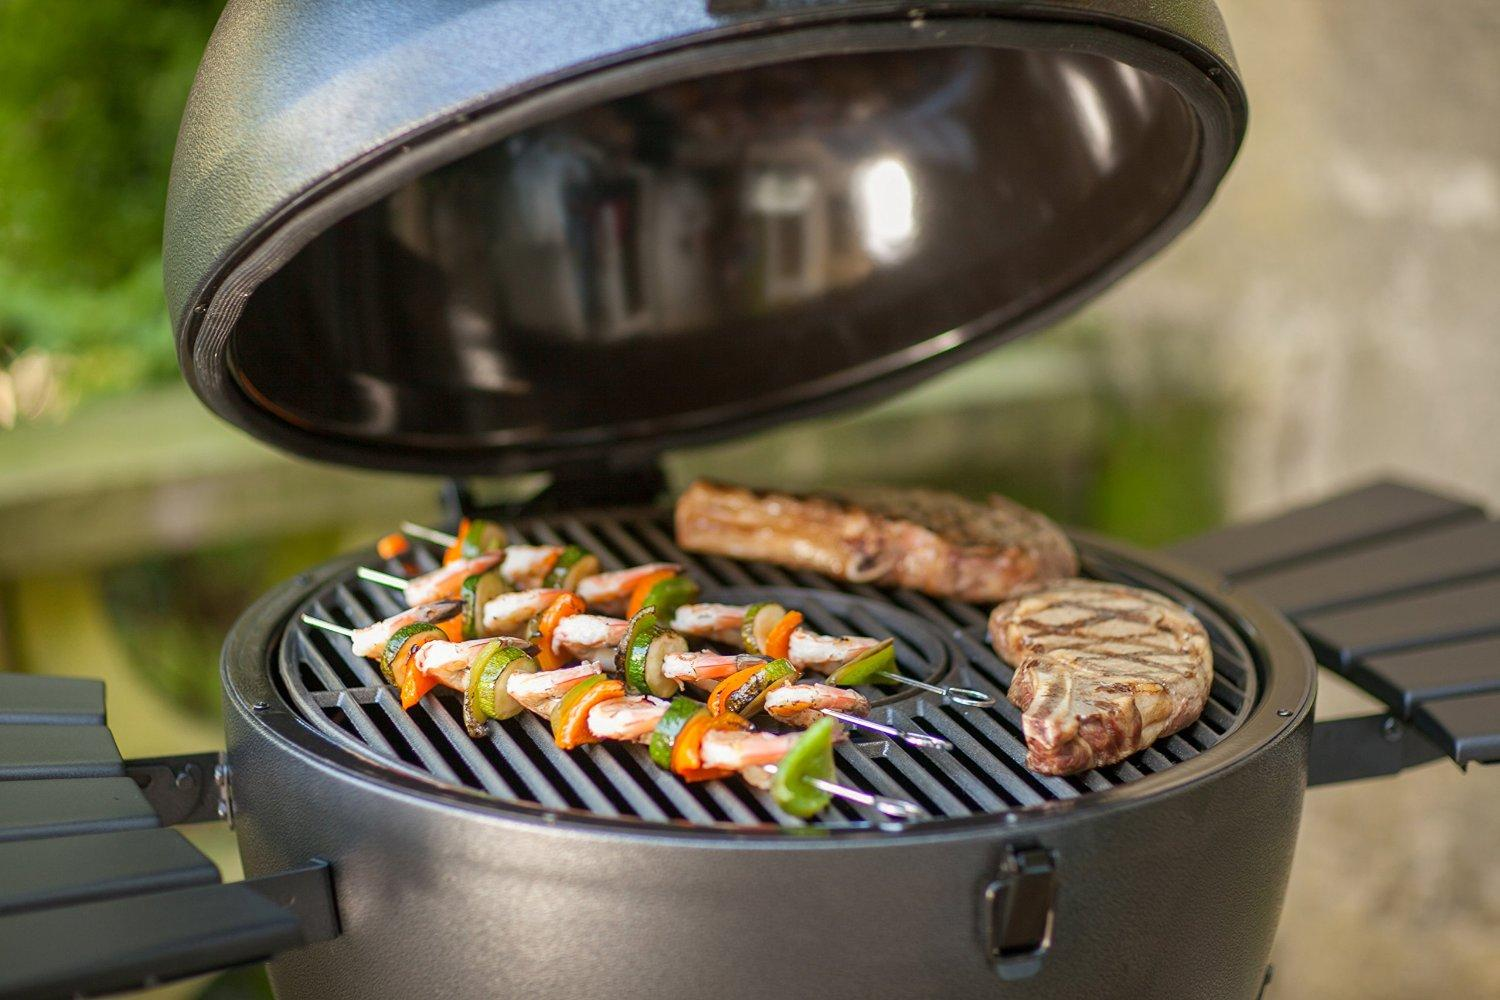 Char-Griller 06620 Akorn Kamado Kooker Charcoal Barbecue Grill and Smoker